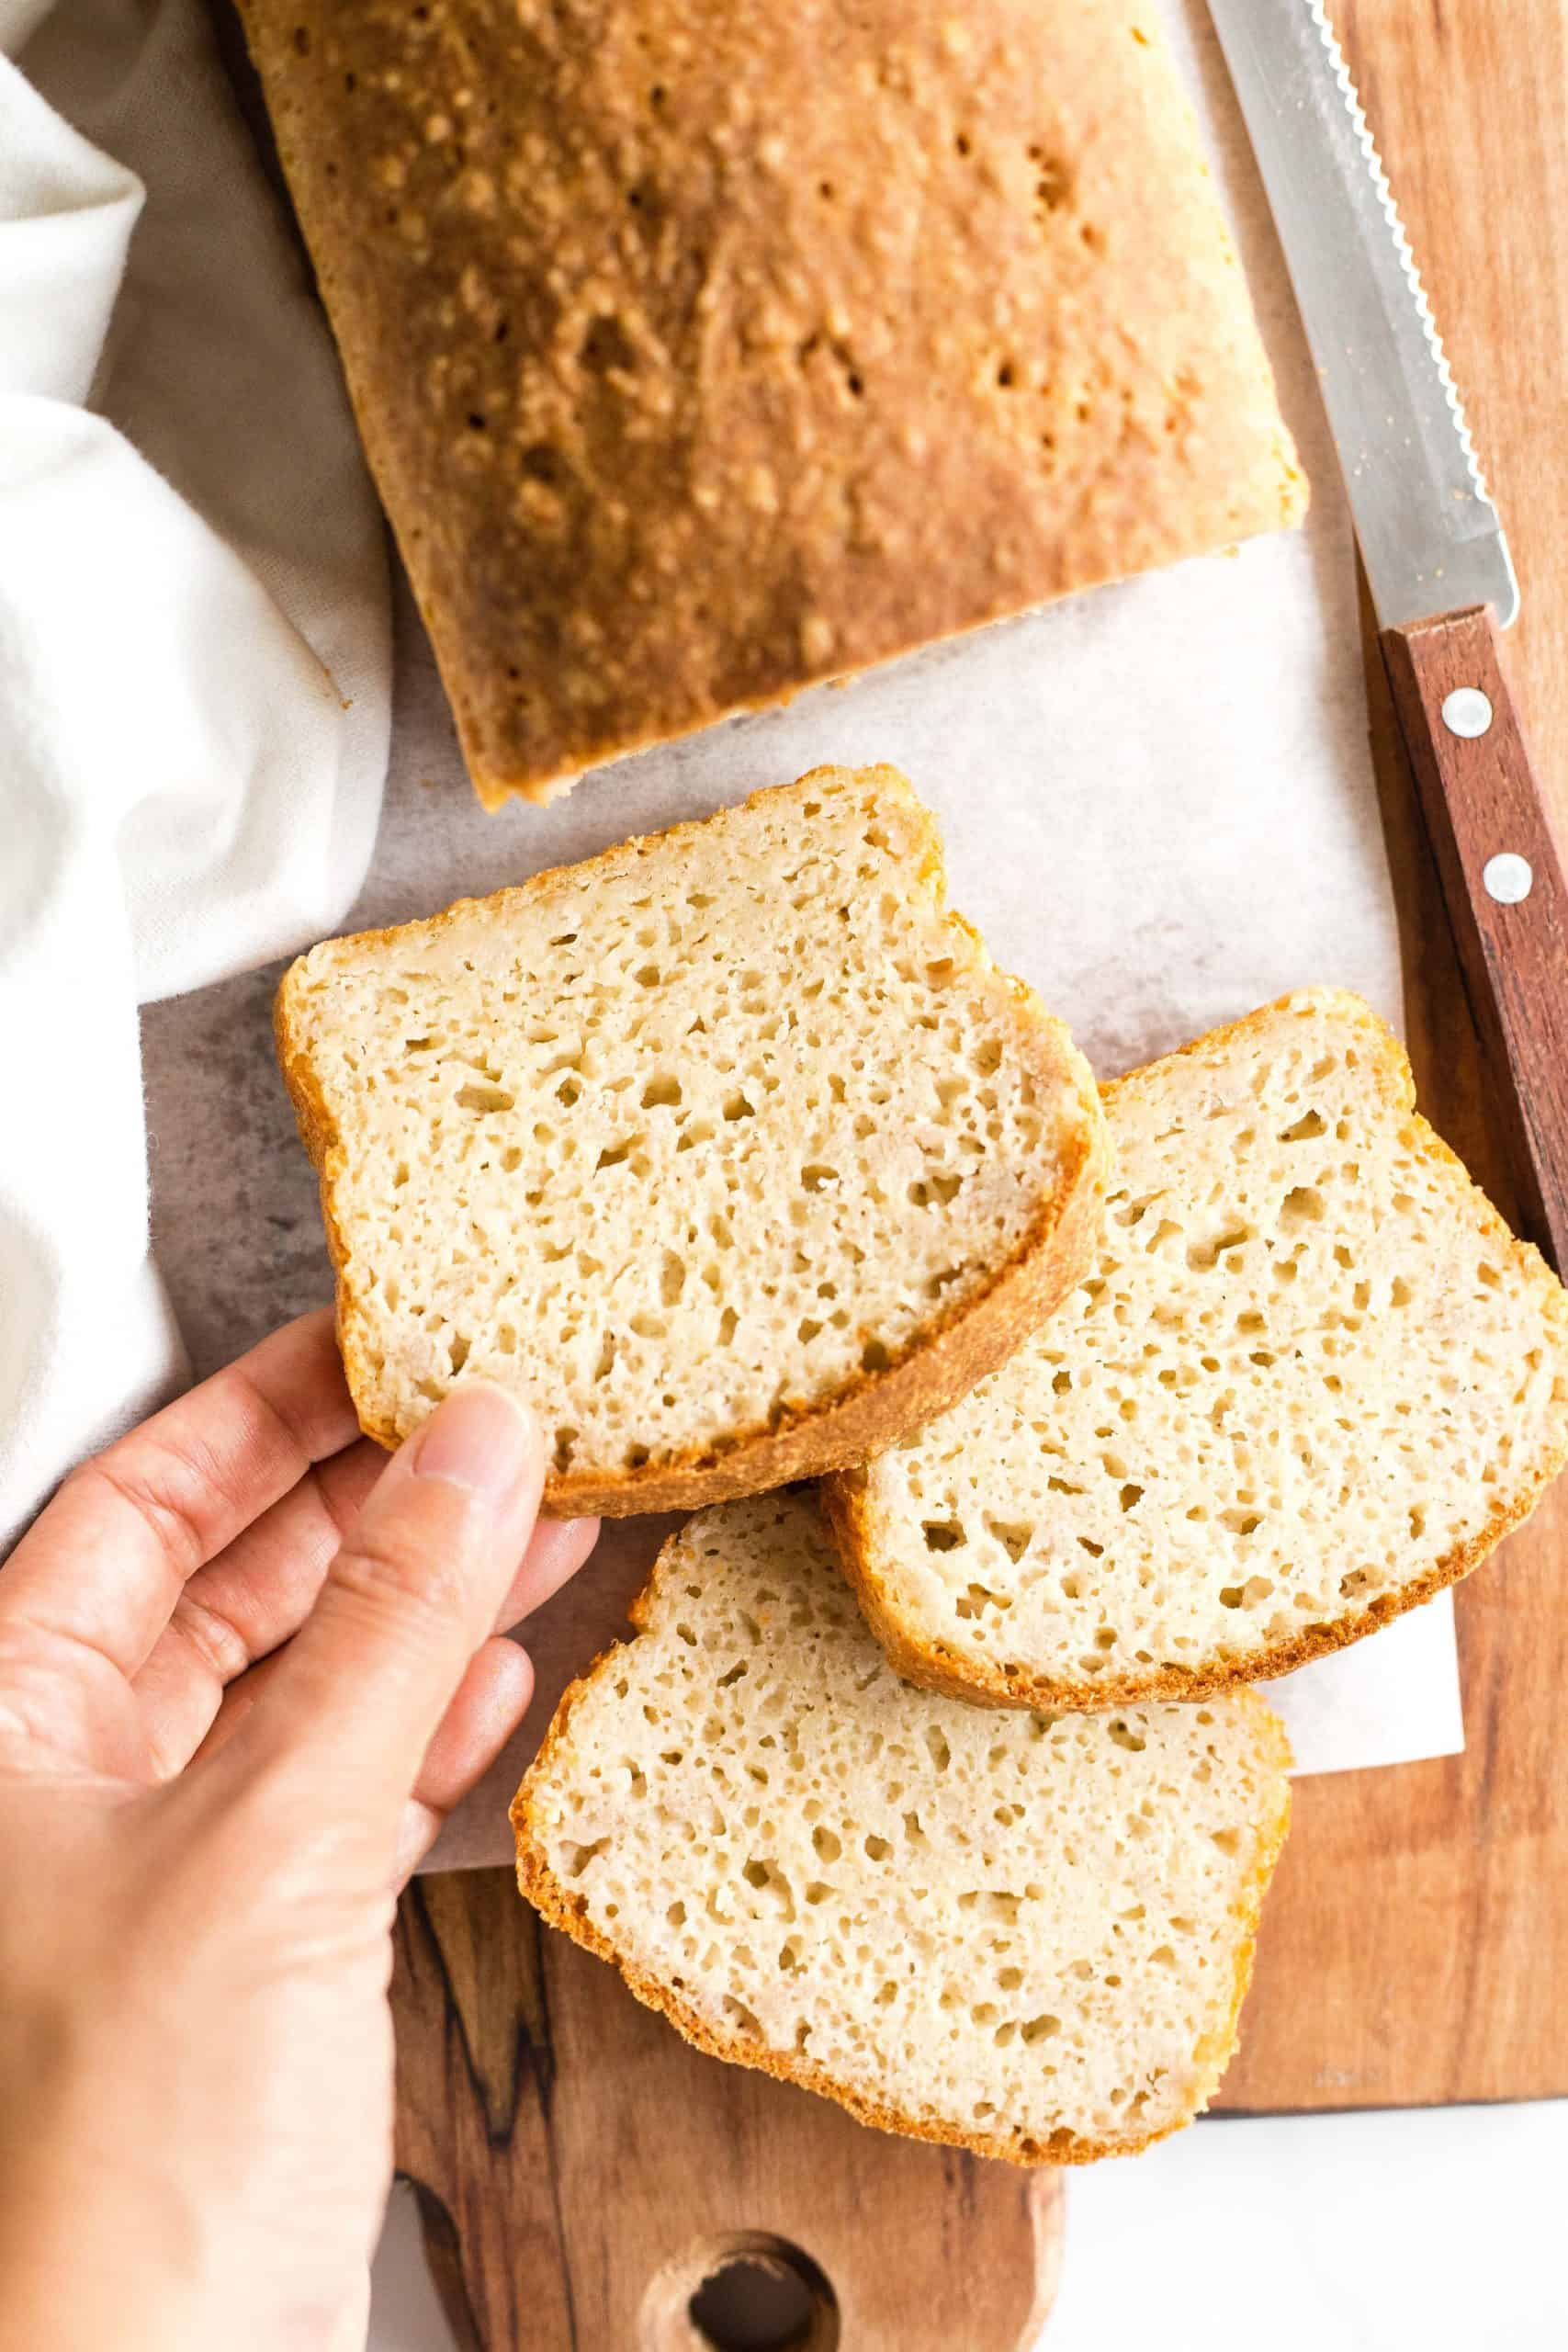 Hand reaching for a slice of bread.